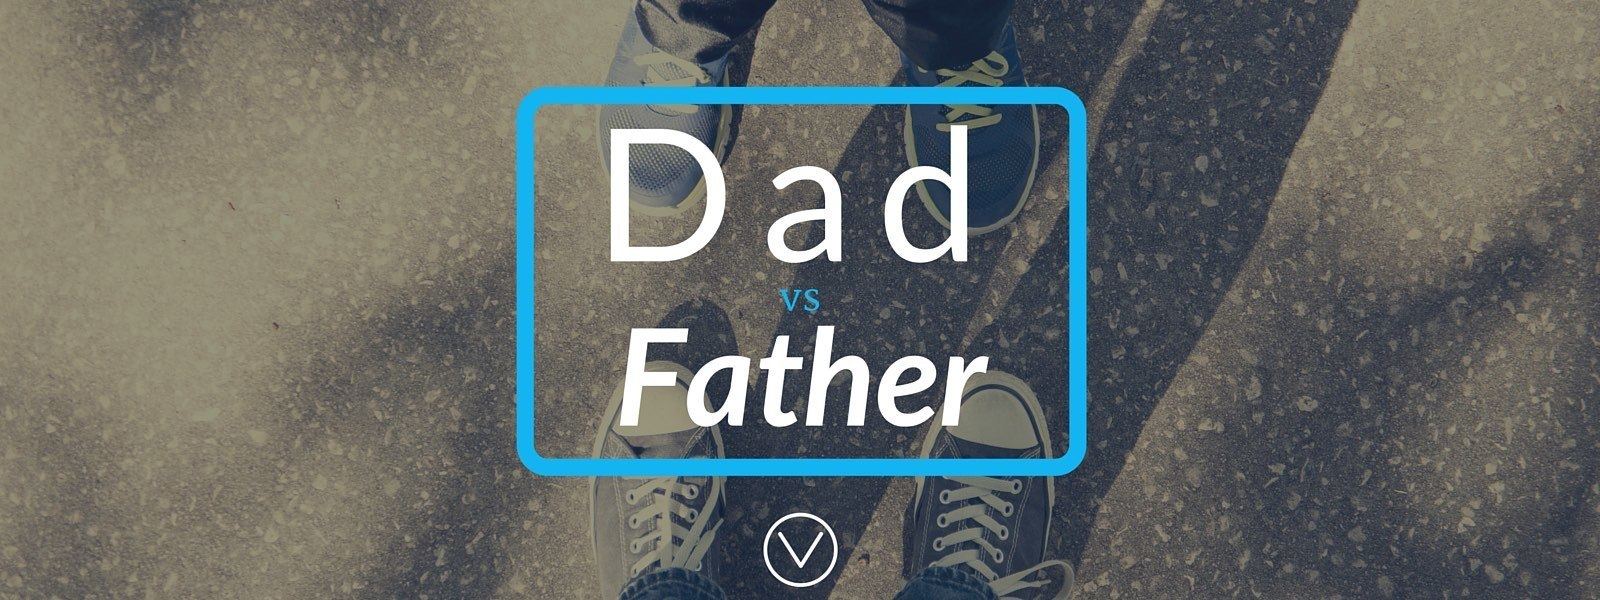 """One dad's take on """"what's the difference between Dad and Father?"""""""